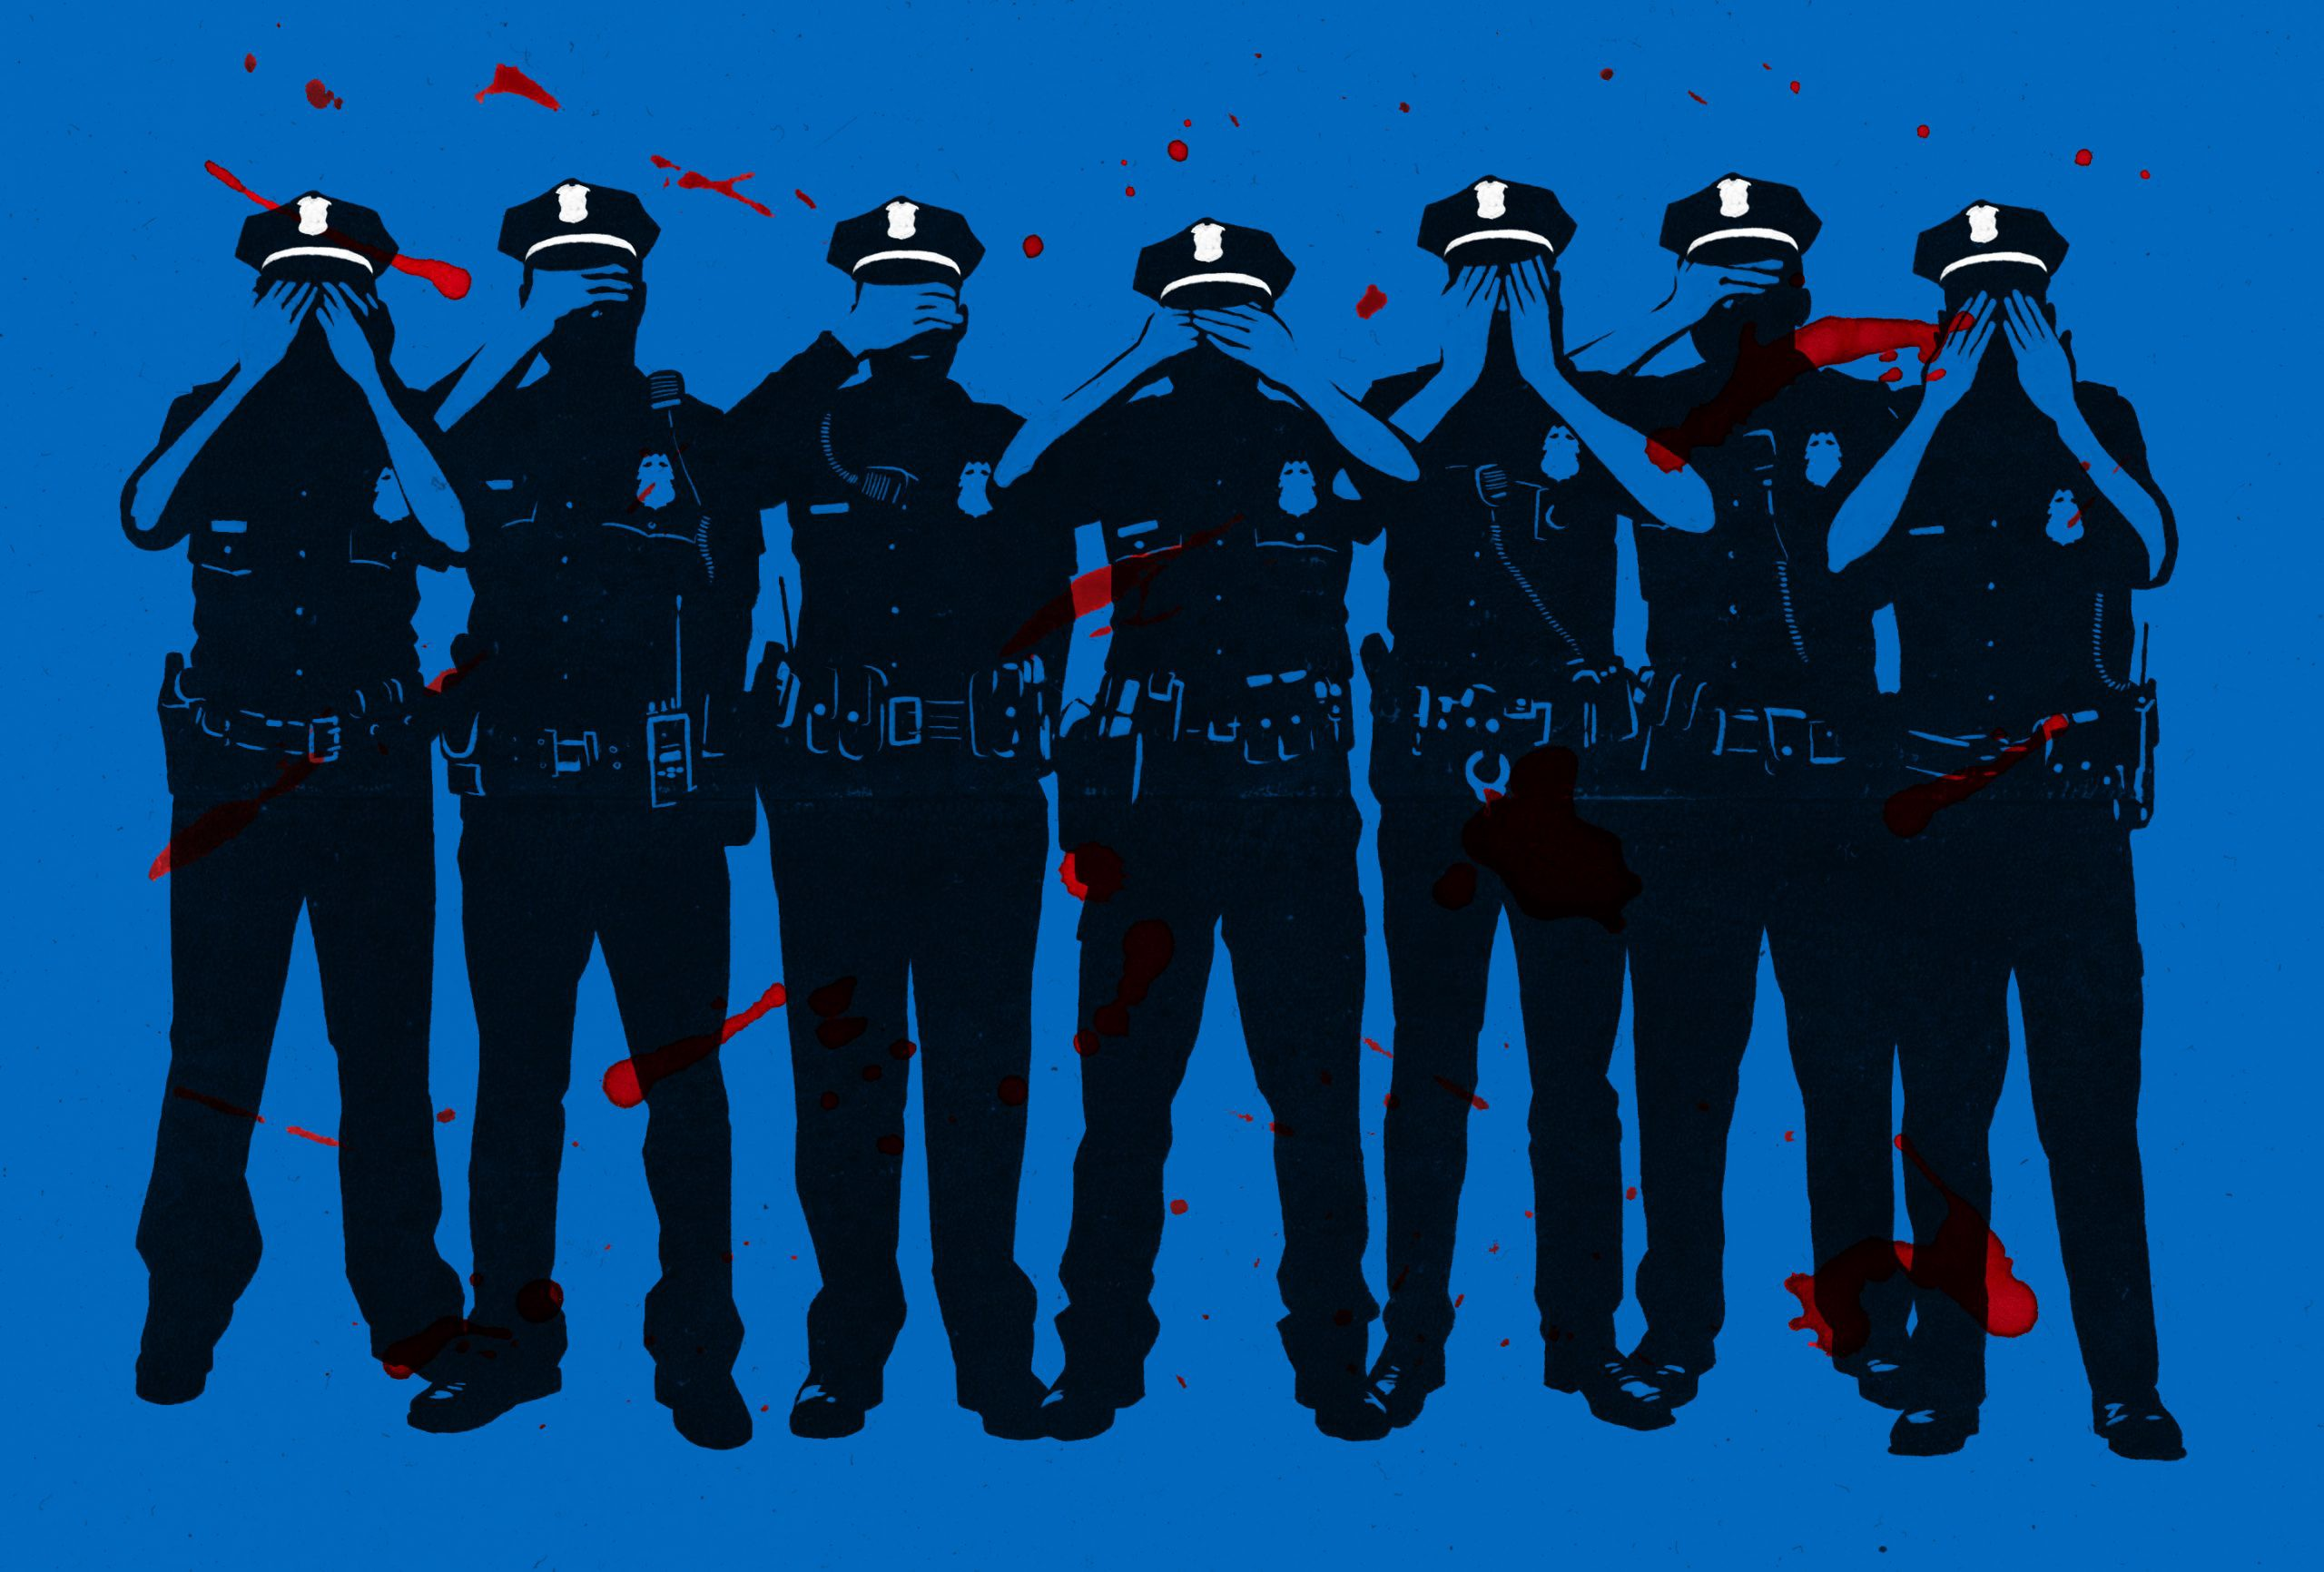 Seven police officers with a blue background. They are covering their eyes. There are red splatters behind them